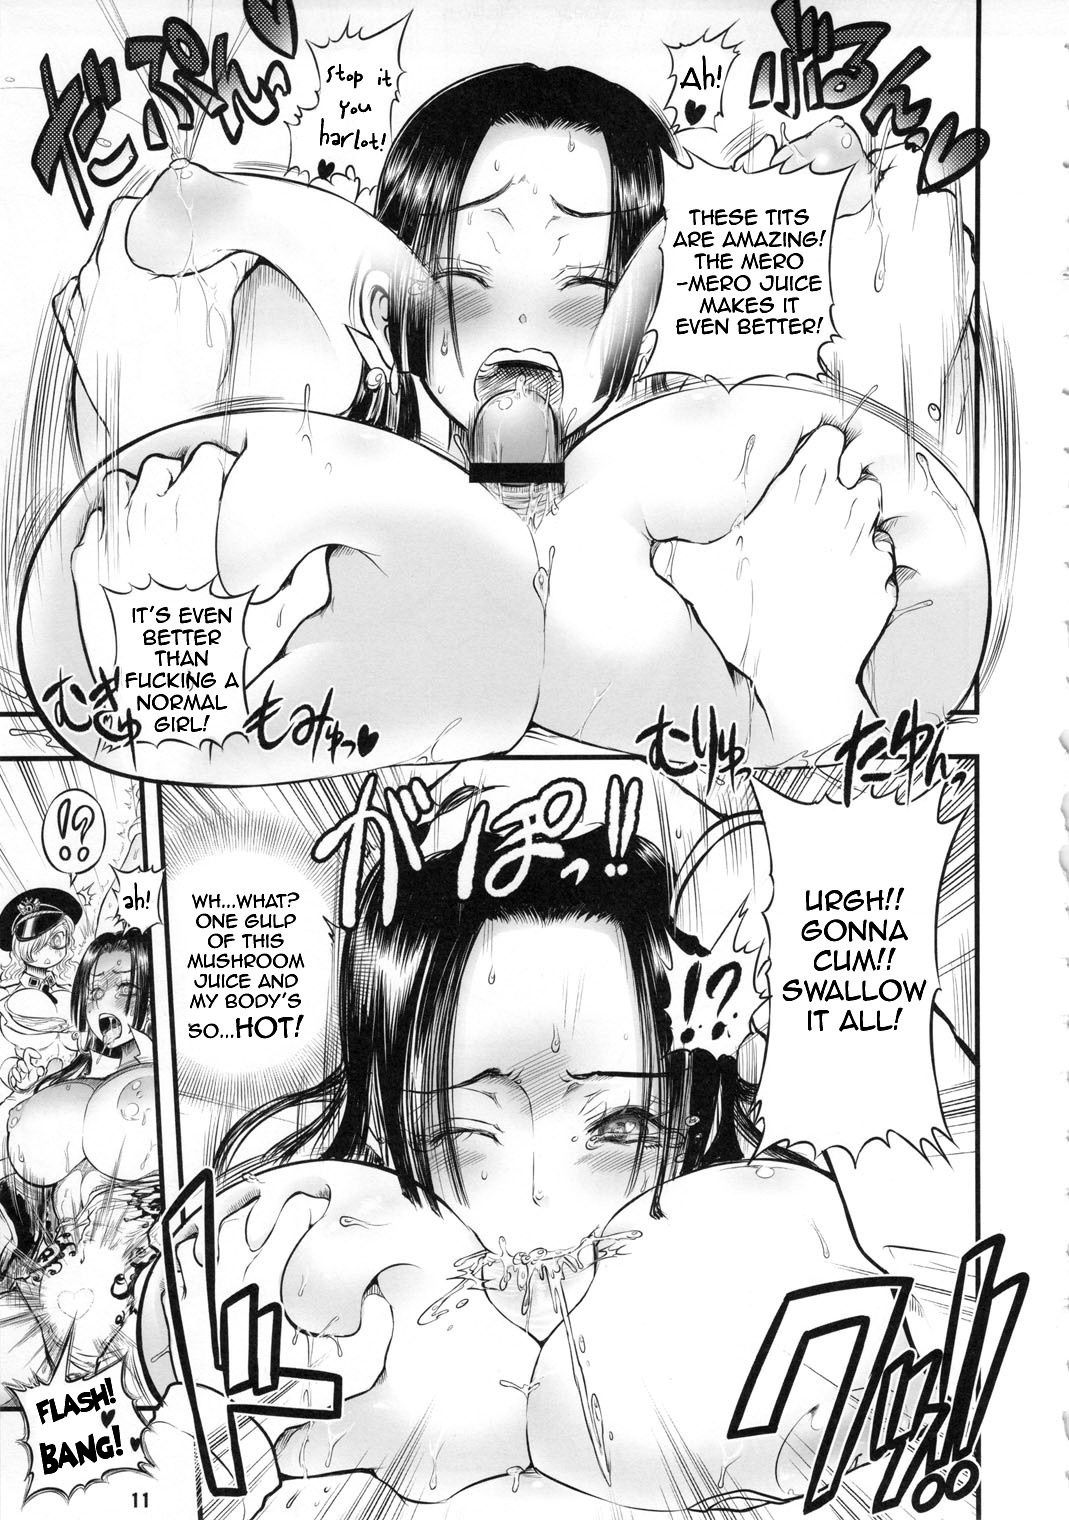 Bloom pirate hooker queen hentai manga picture 05